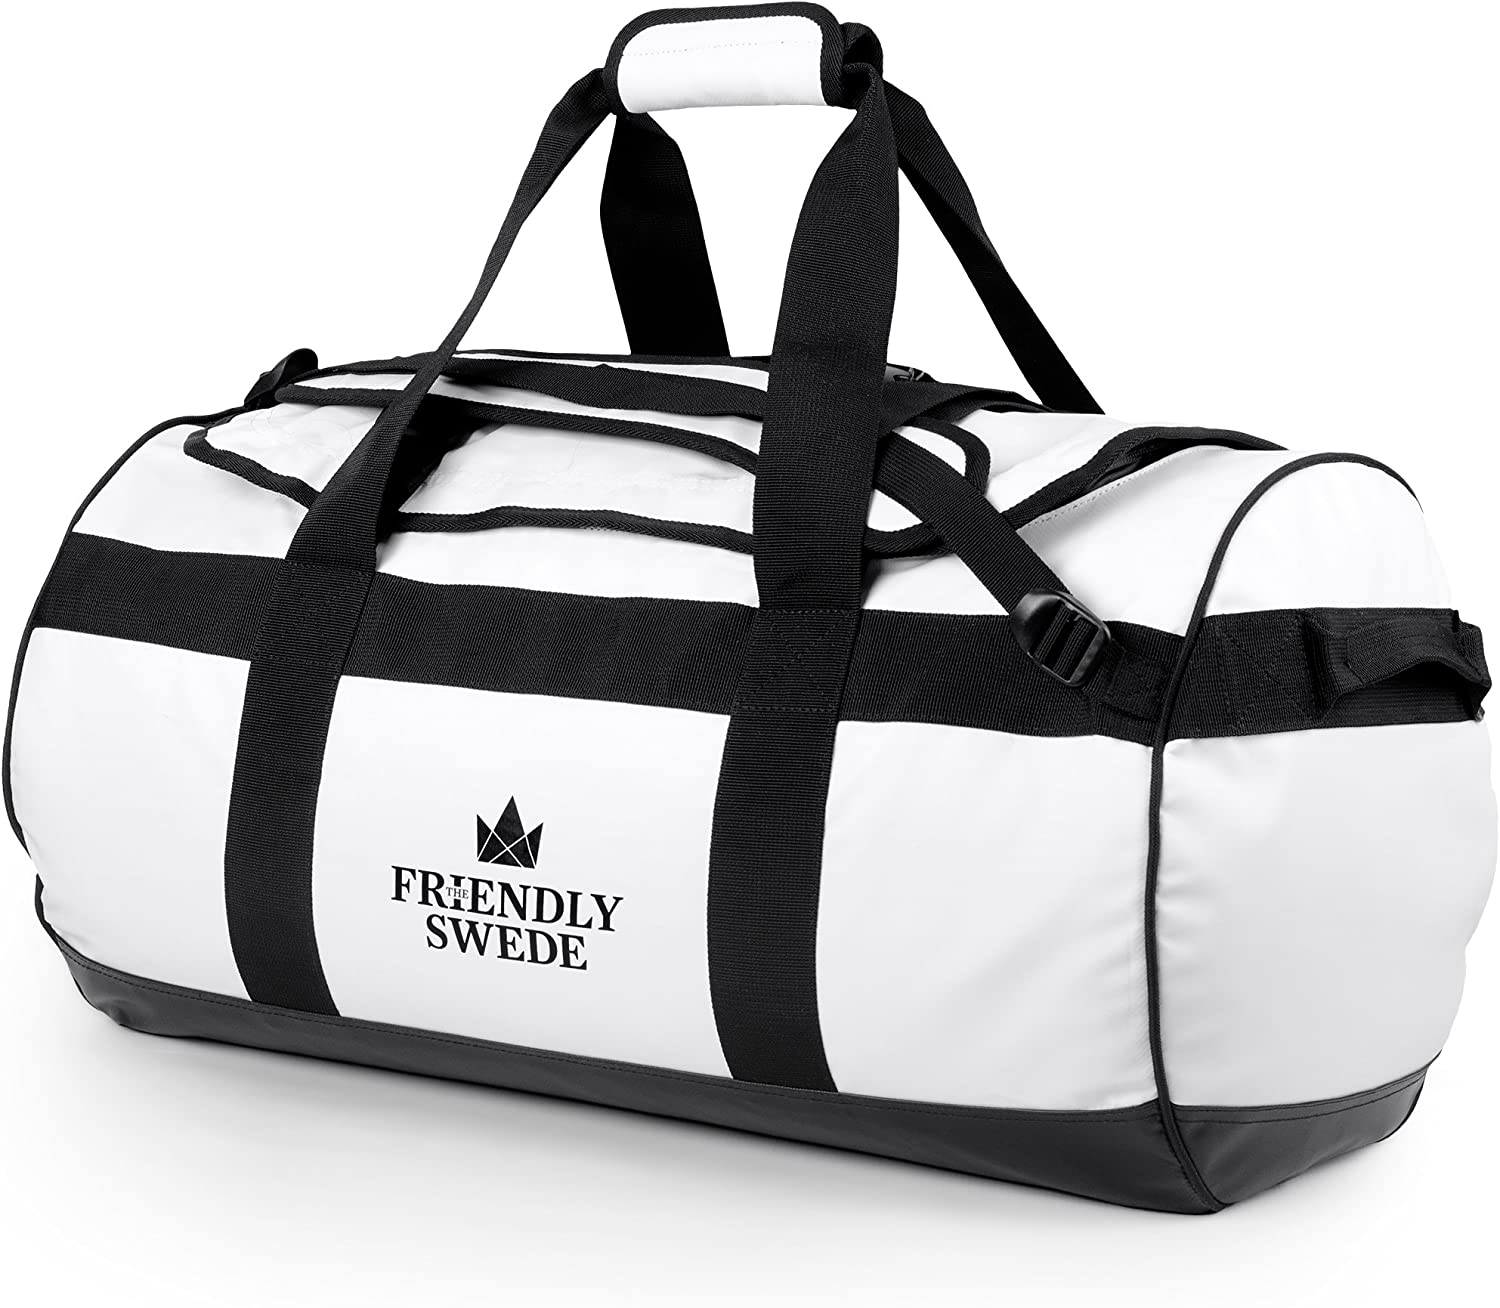 The Friendly Swede Duffel Animer and price revision bag with for Ranking TOP11 Straps Trav Backpack Gym